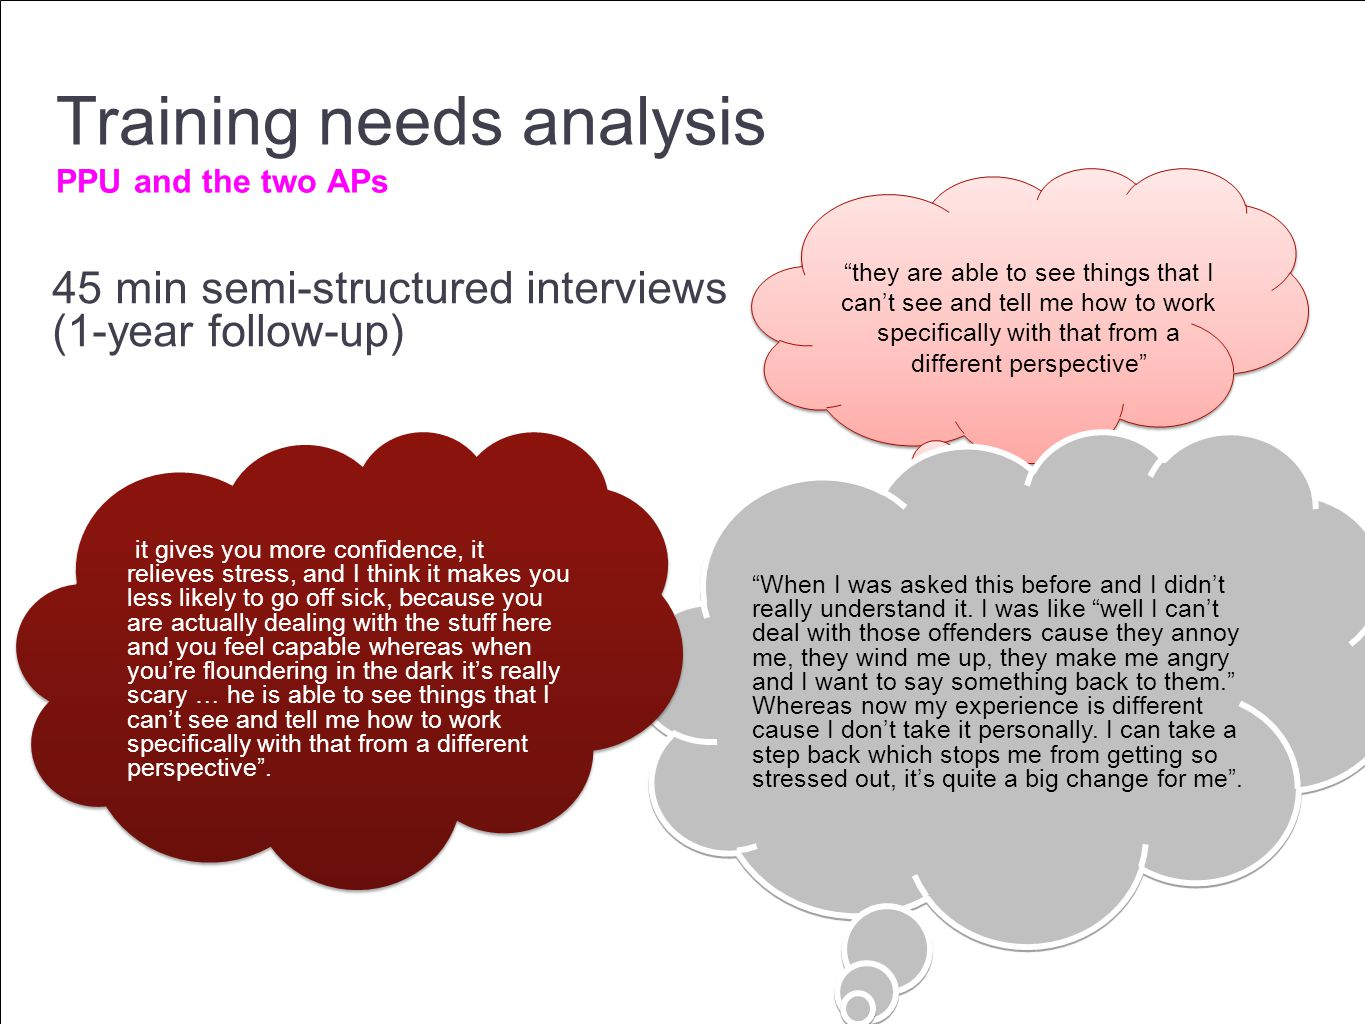 ‹ Training needs analysis PPU and the two APs 45 min semi-structured interviews (1-year follow-up) they are able to see things that I can't see and tell me how to work specifically with that from a different perspective When I was asked this before and I didn't really understand it.